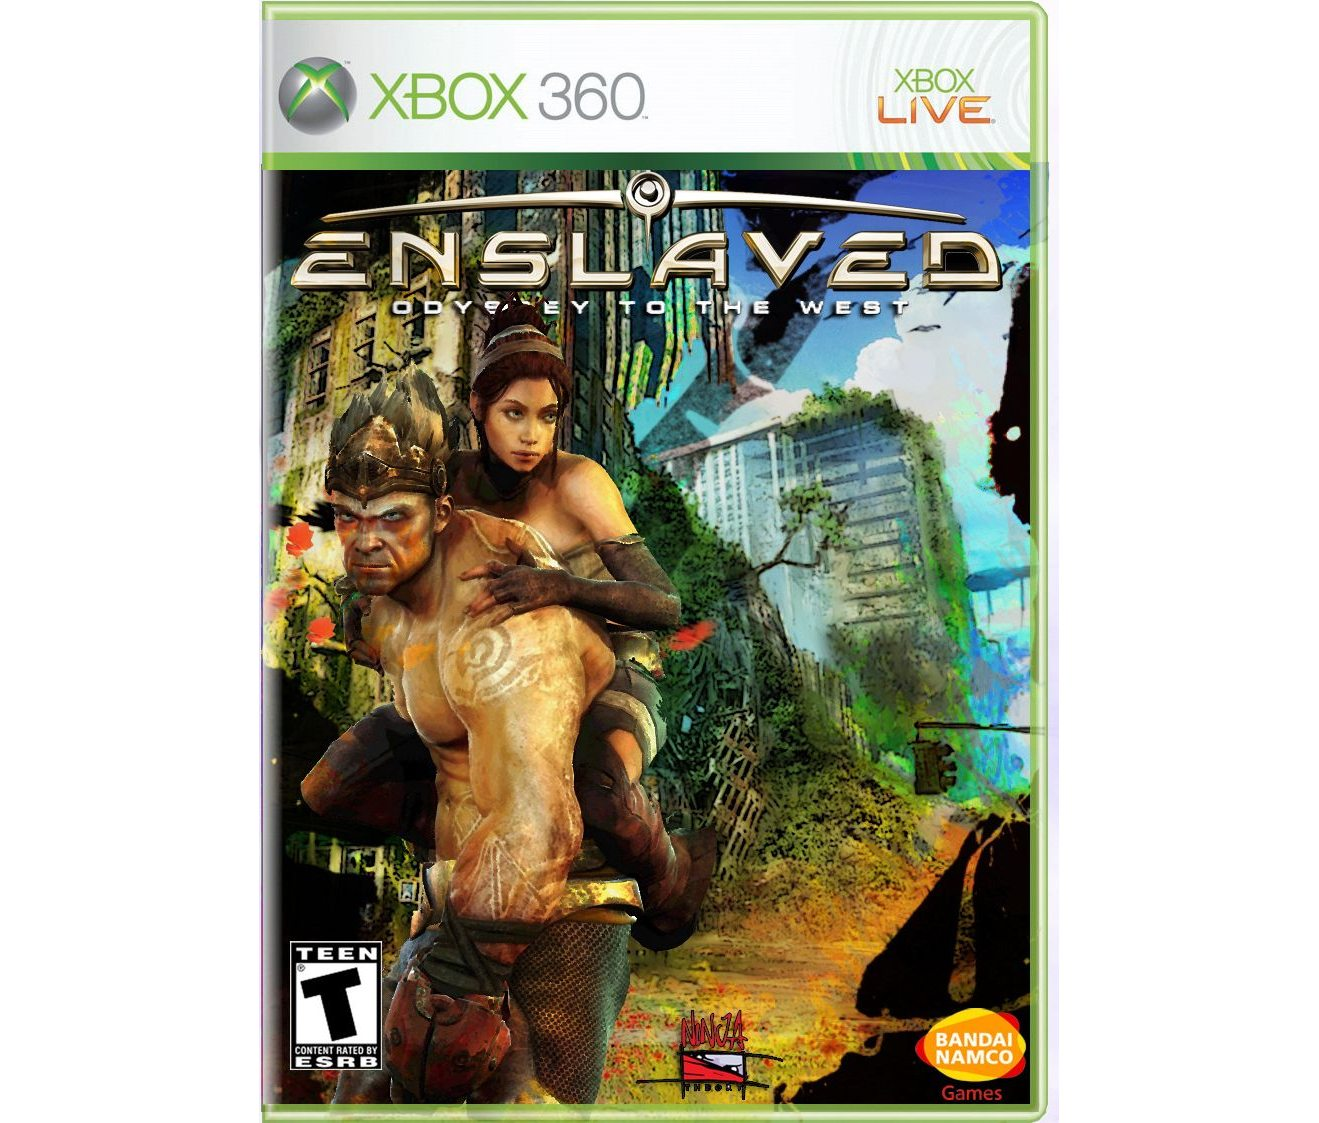 Xbox 360 Enslaved: Odyssey to the West Xbox 360